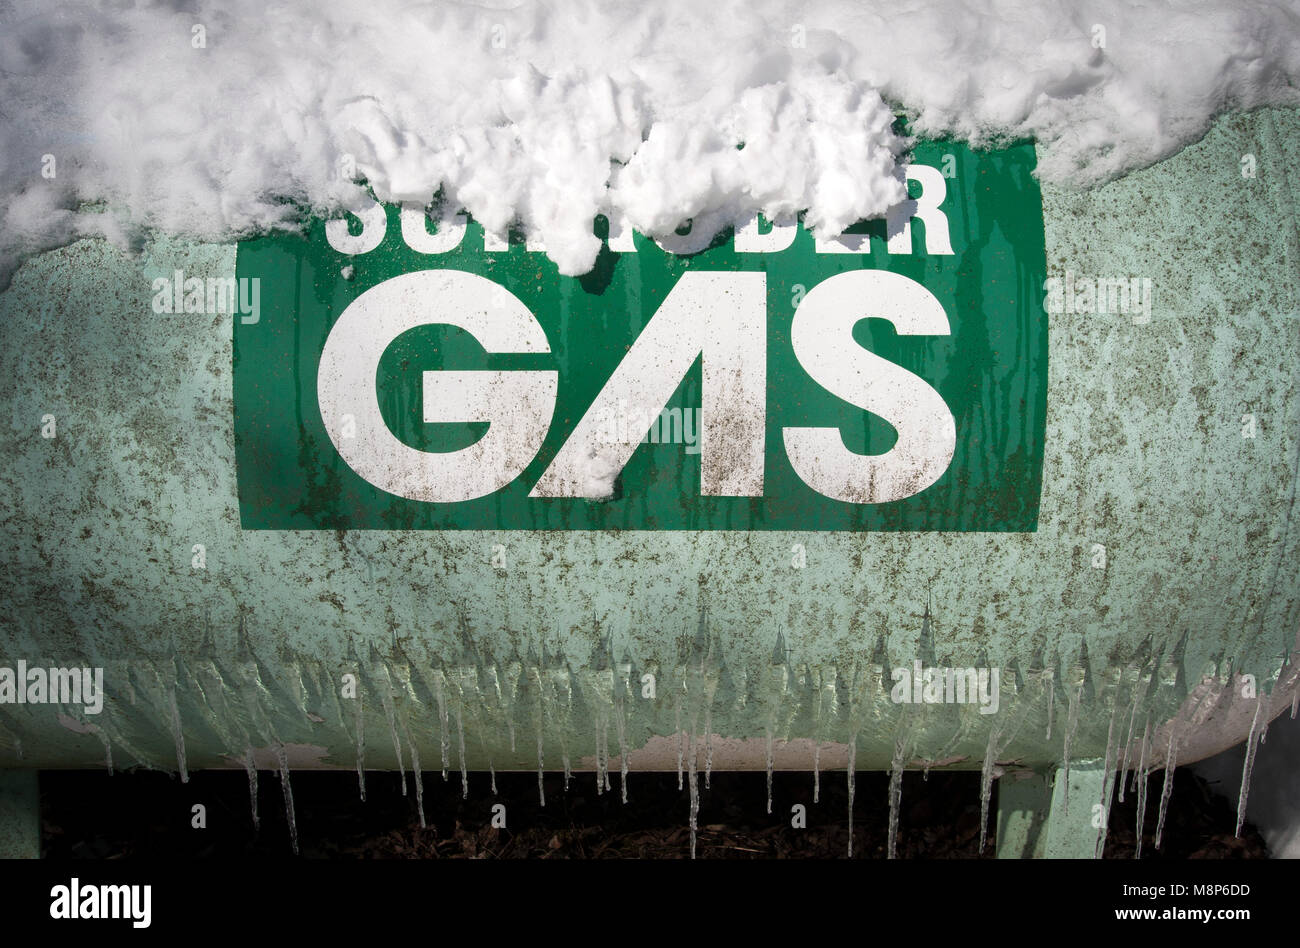 Gas bottle container for home central heating - Stock Image